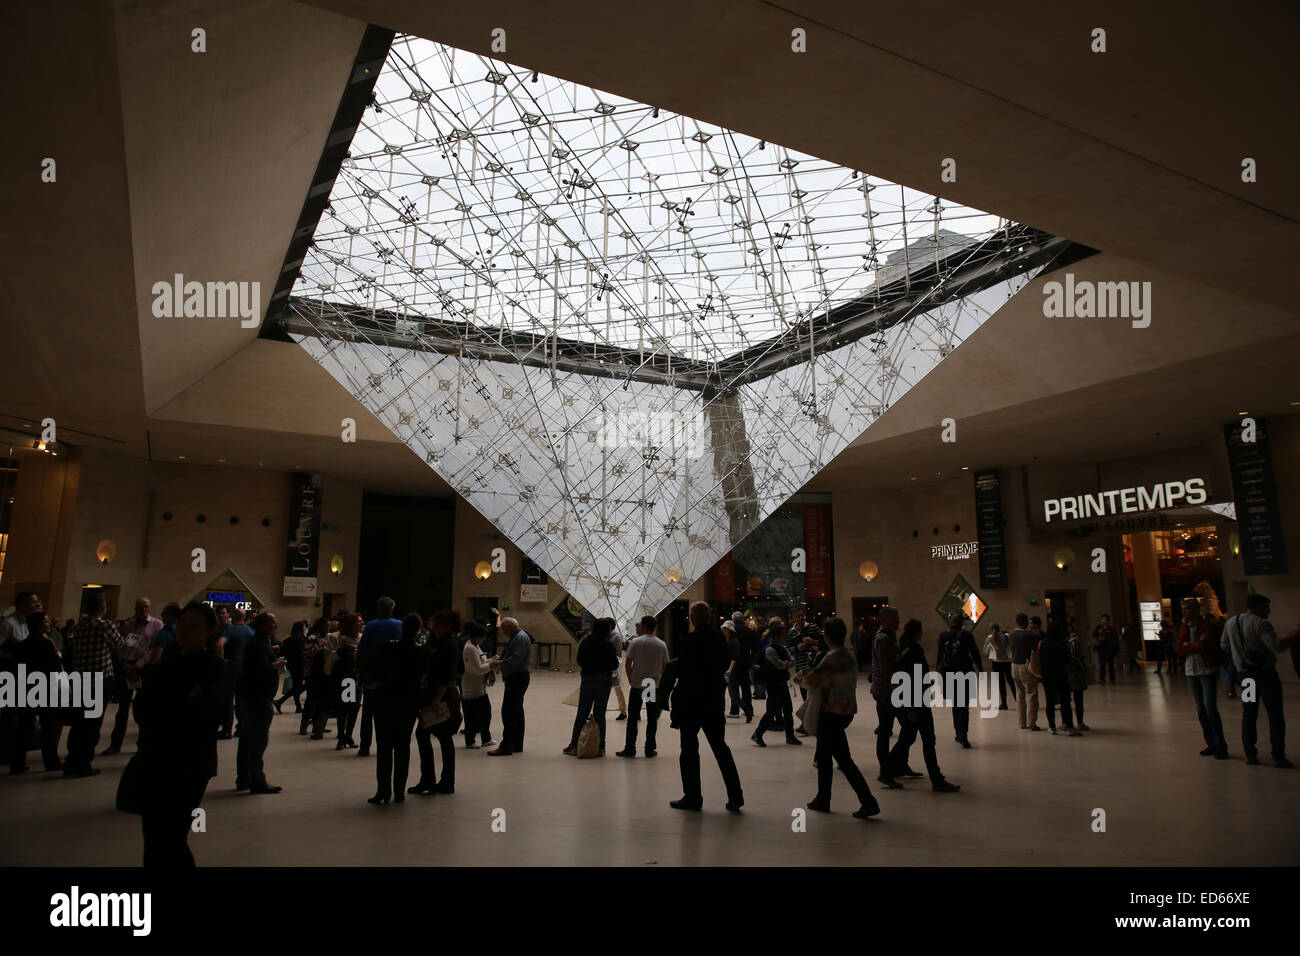 The Inverted Pyramid Louvre Museum - Stock Image